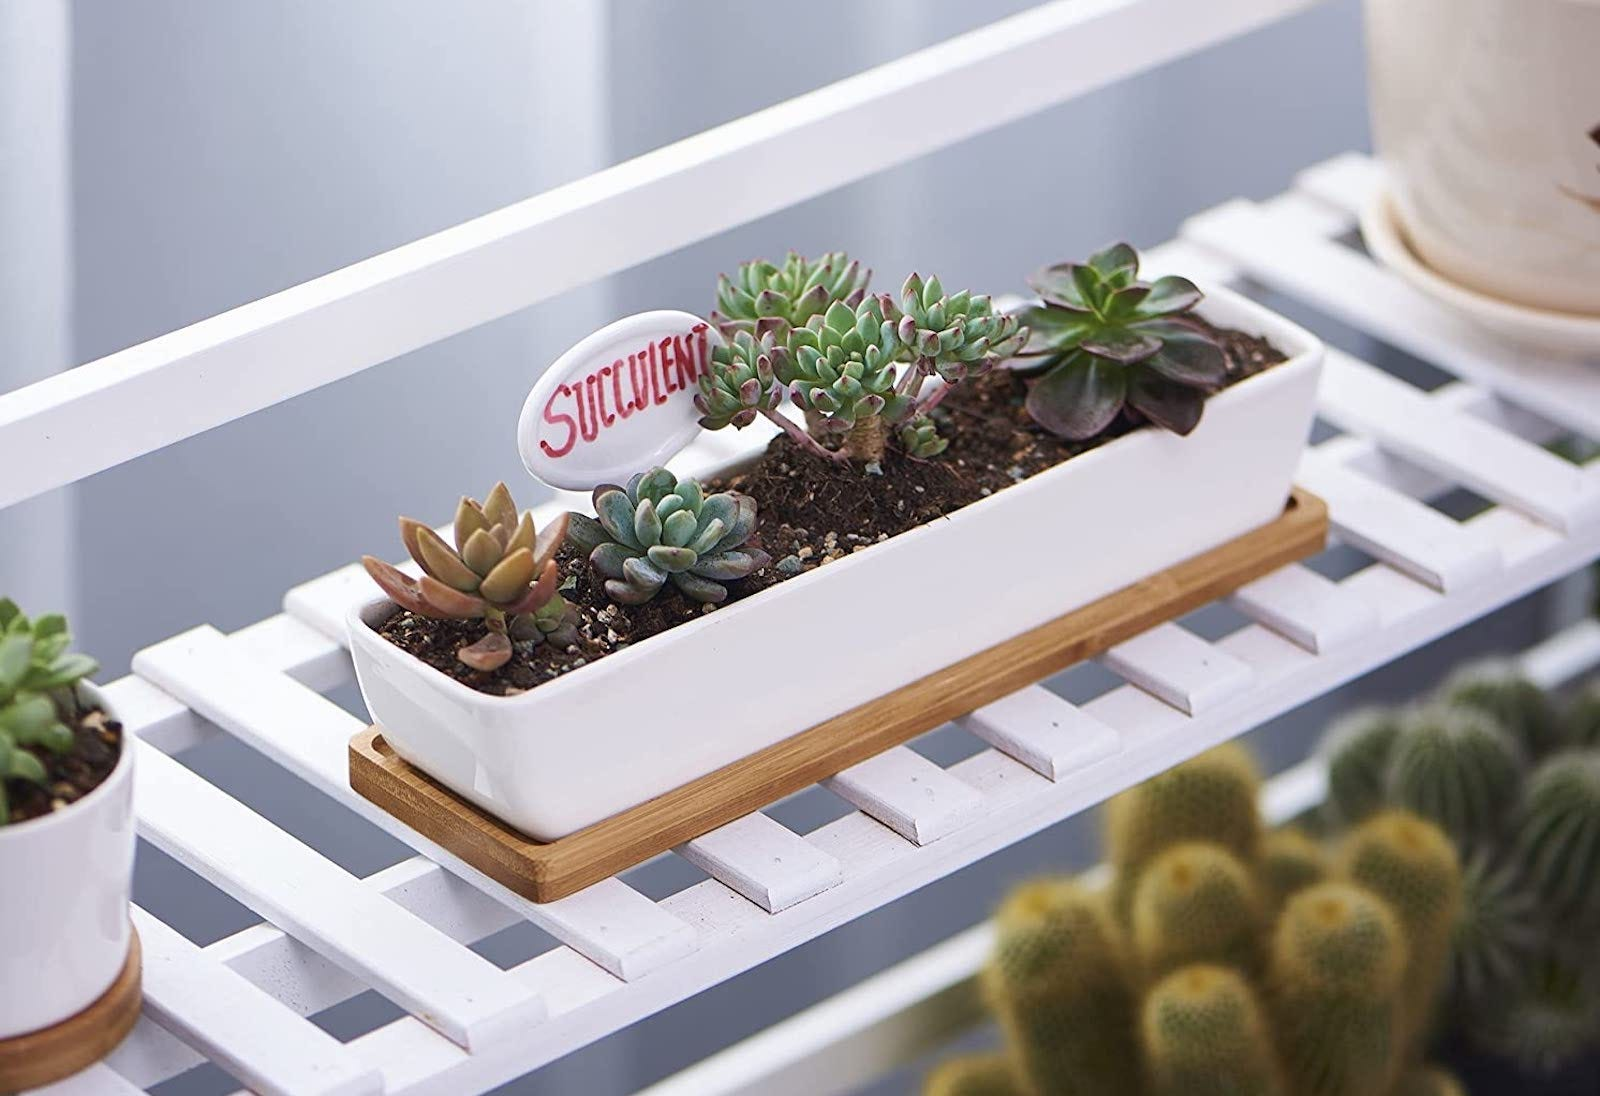 A white ceramic planter filled with succulents, sitting on white wooden slats.